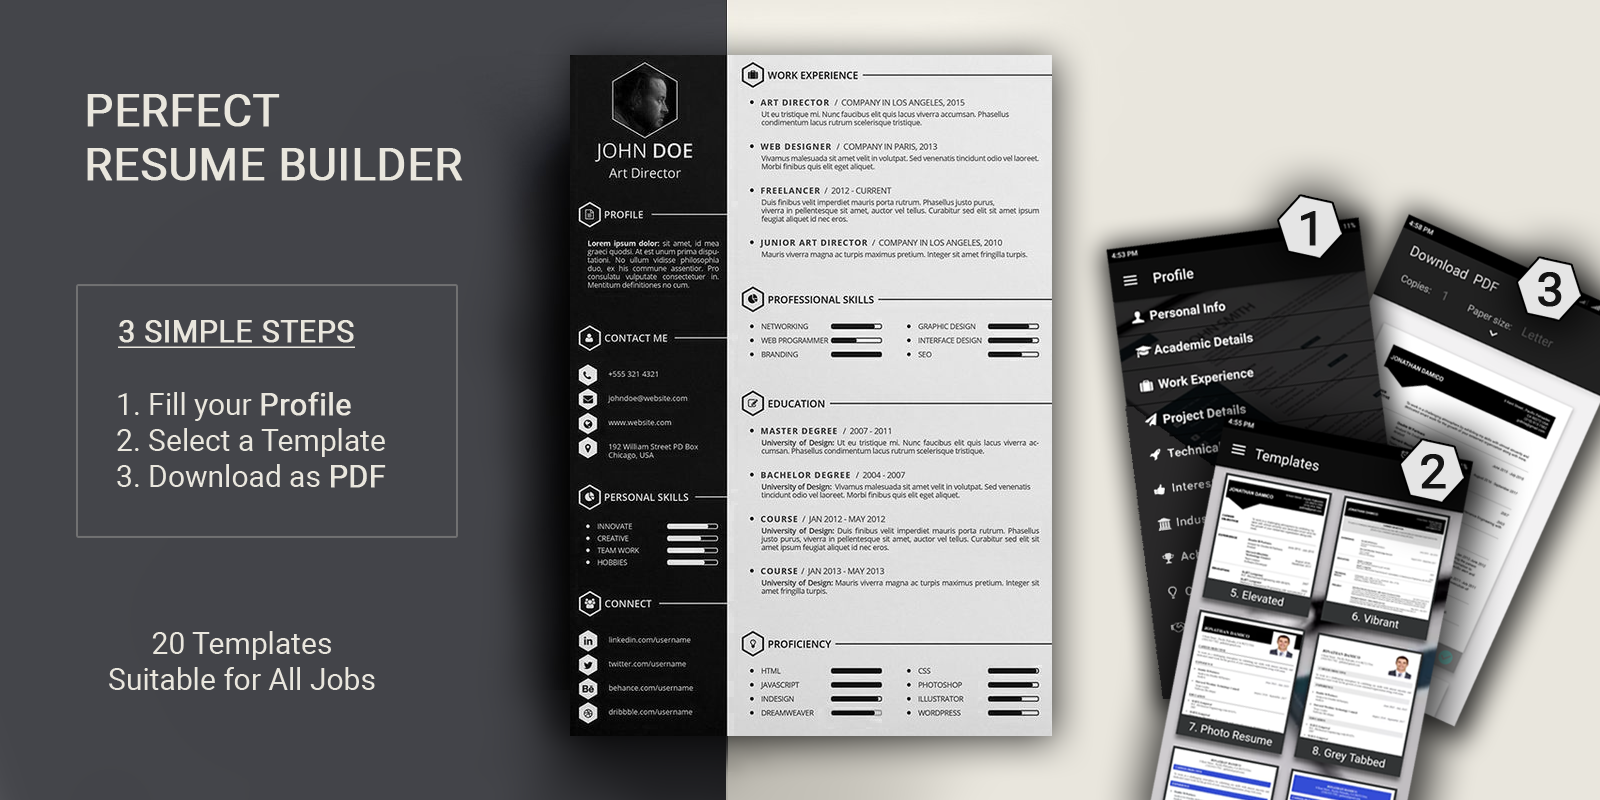 resume builder 2018 30 resume templates aristoz indie hackers